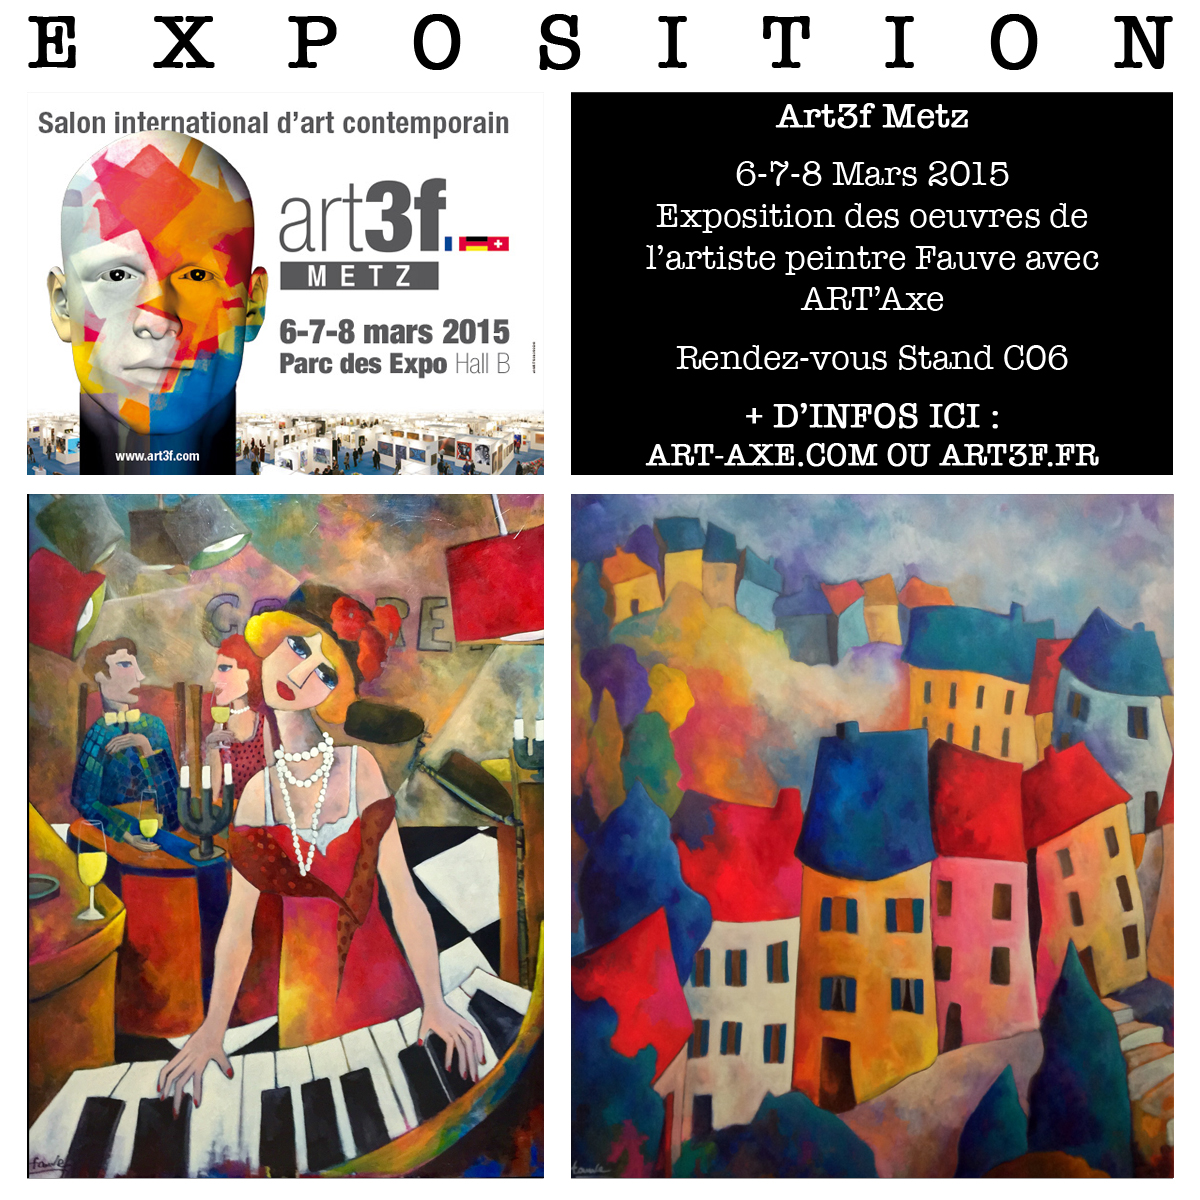 exposition art3f metz avec art 39 axe 6 7 et 8 mars 2015 artiste peintre fauve. Black Bedroom Furniture Sets. Home Design Ideas